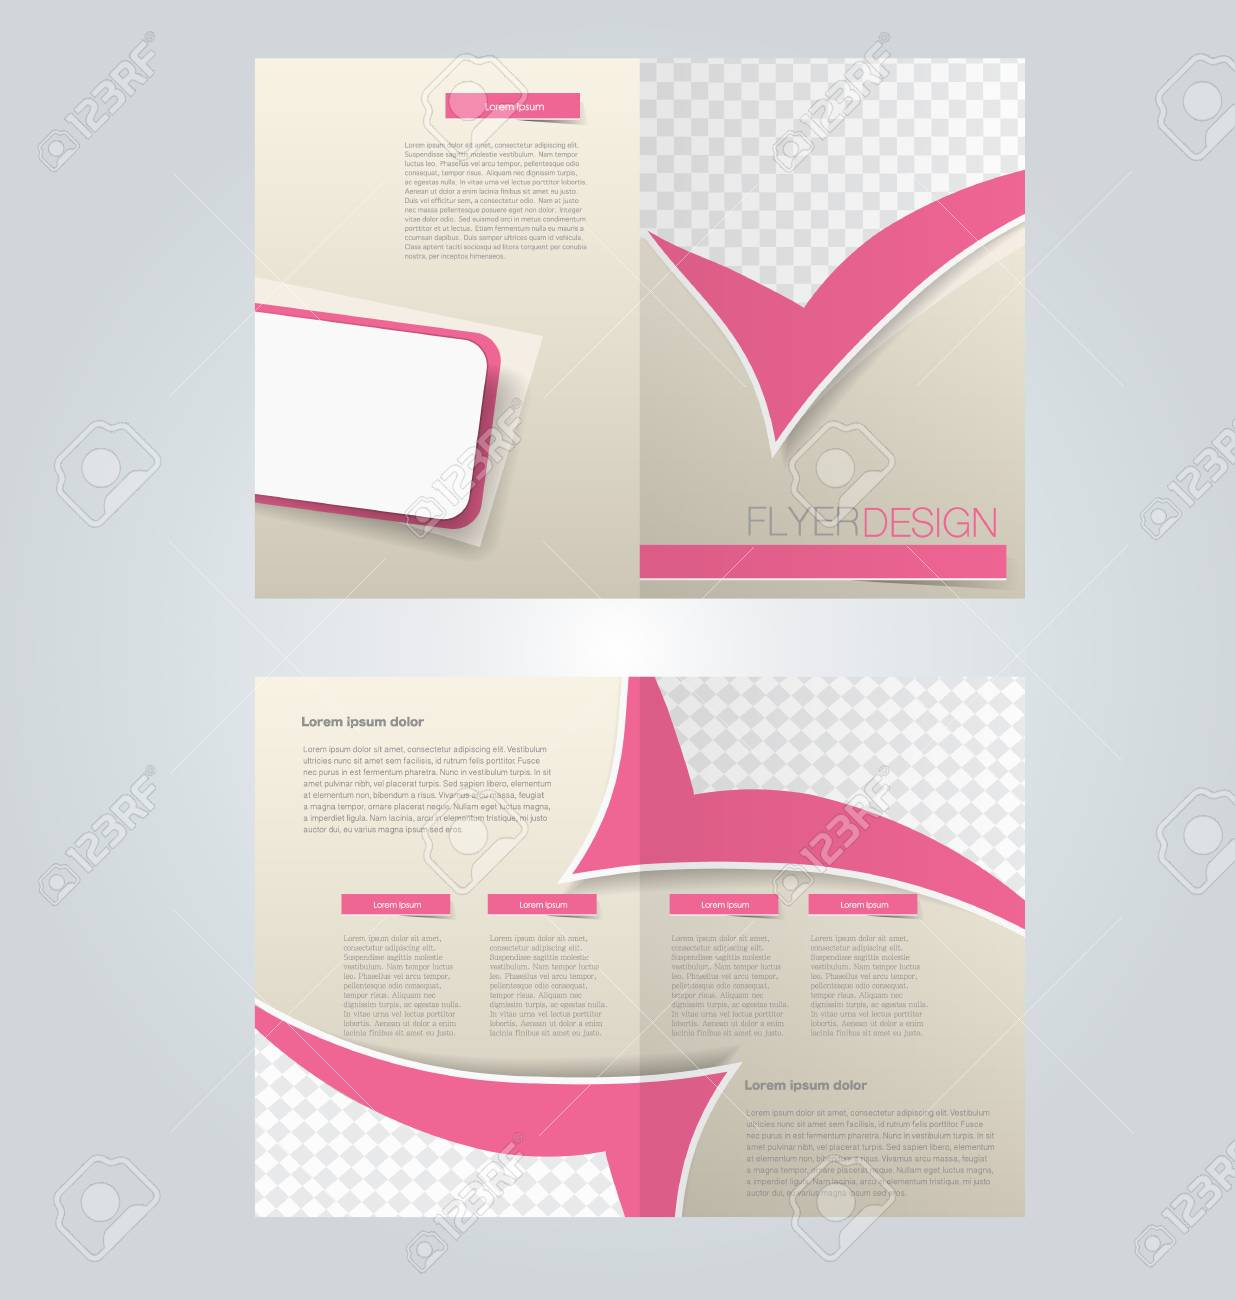 Brochure Template Design Two Page Mock Up Flyer Pink Color - Two page brochure template